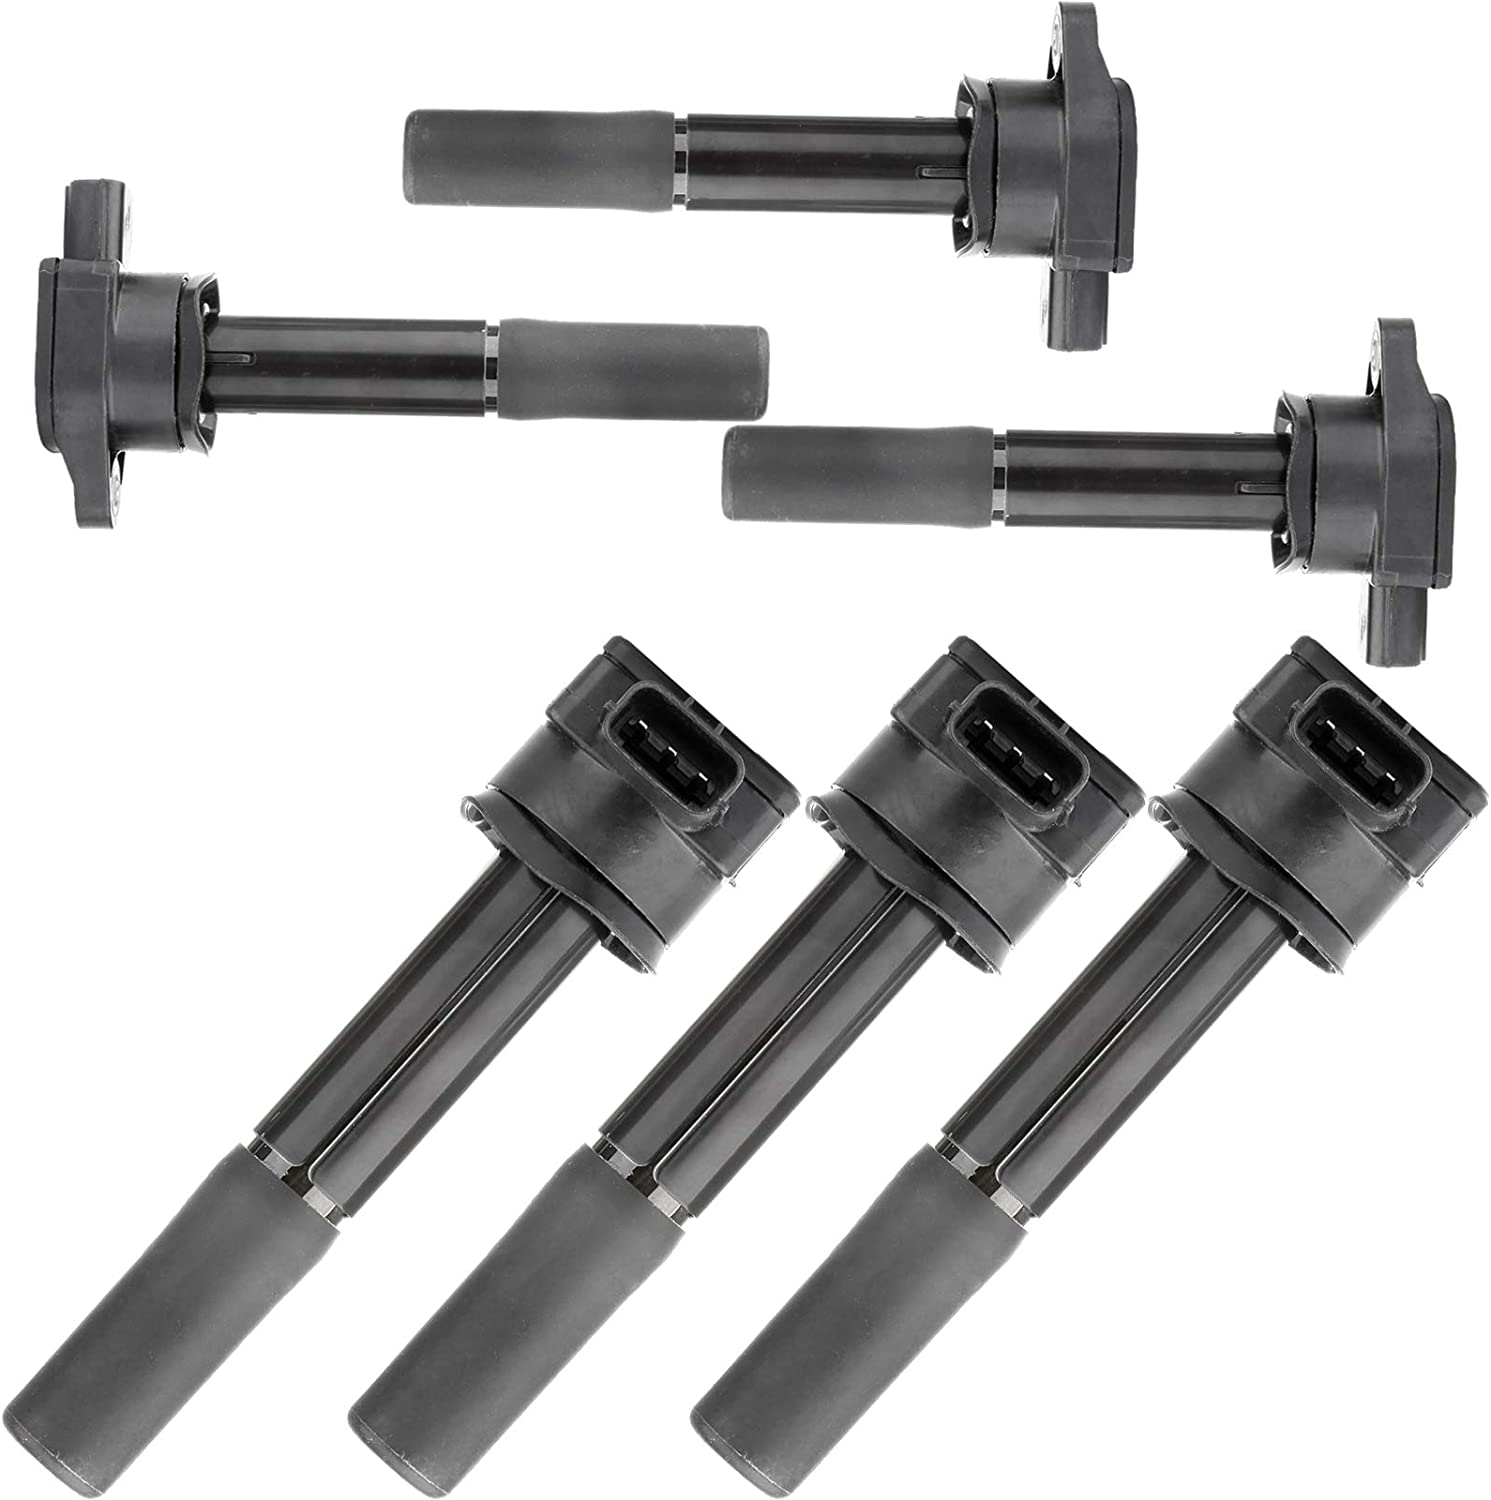 ROADFAR Pack of 6 Ignition Coils Fit for Mitsubishi Endeavor Mitsubishi Galant V6 3.8L 2004-2008 Equivalent with OE UF481 C1505